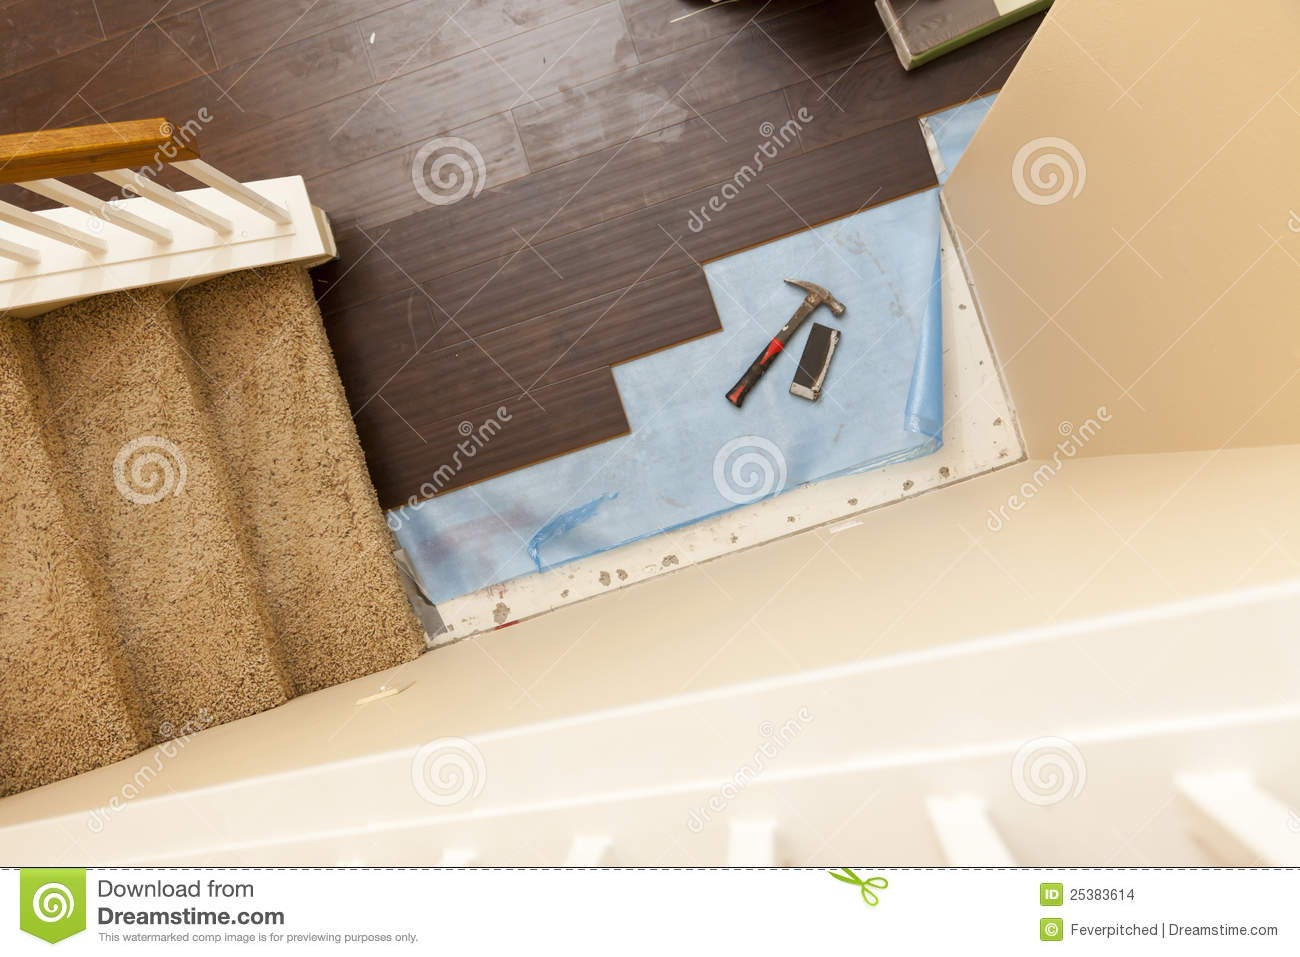 High Angle View of Hammer and Block with New Laminate Flooring